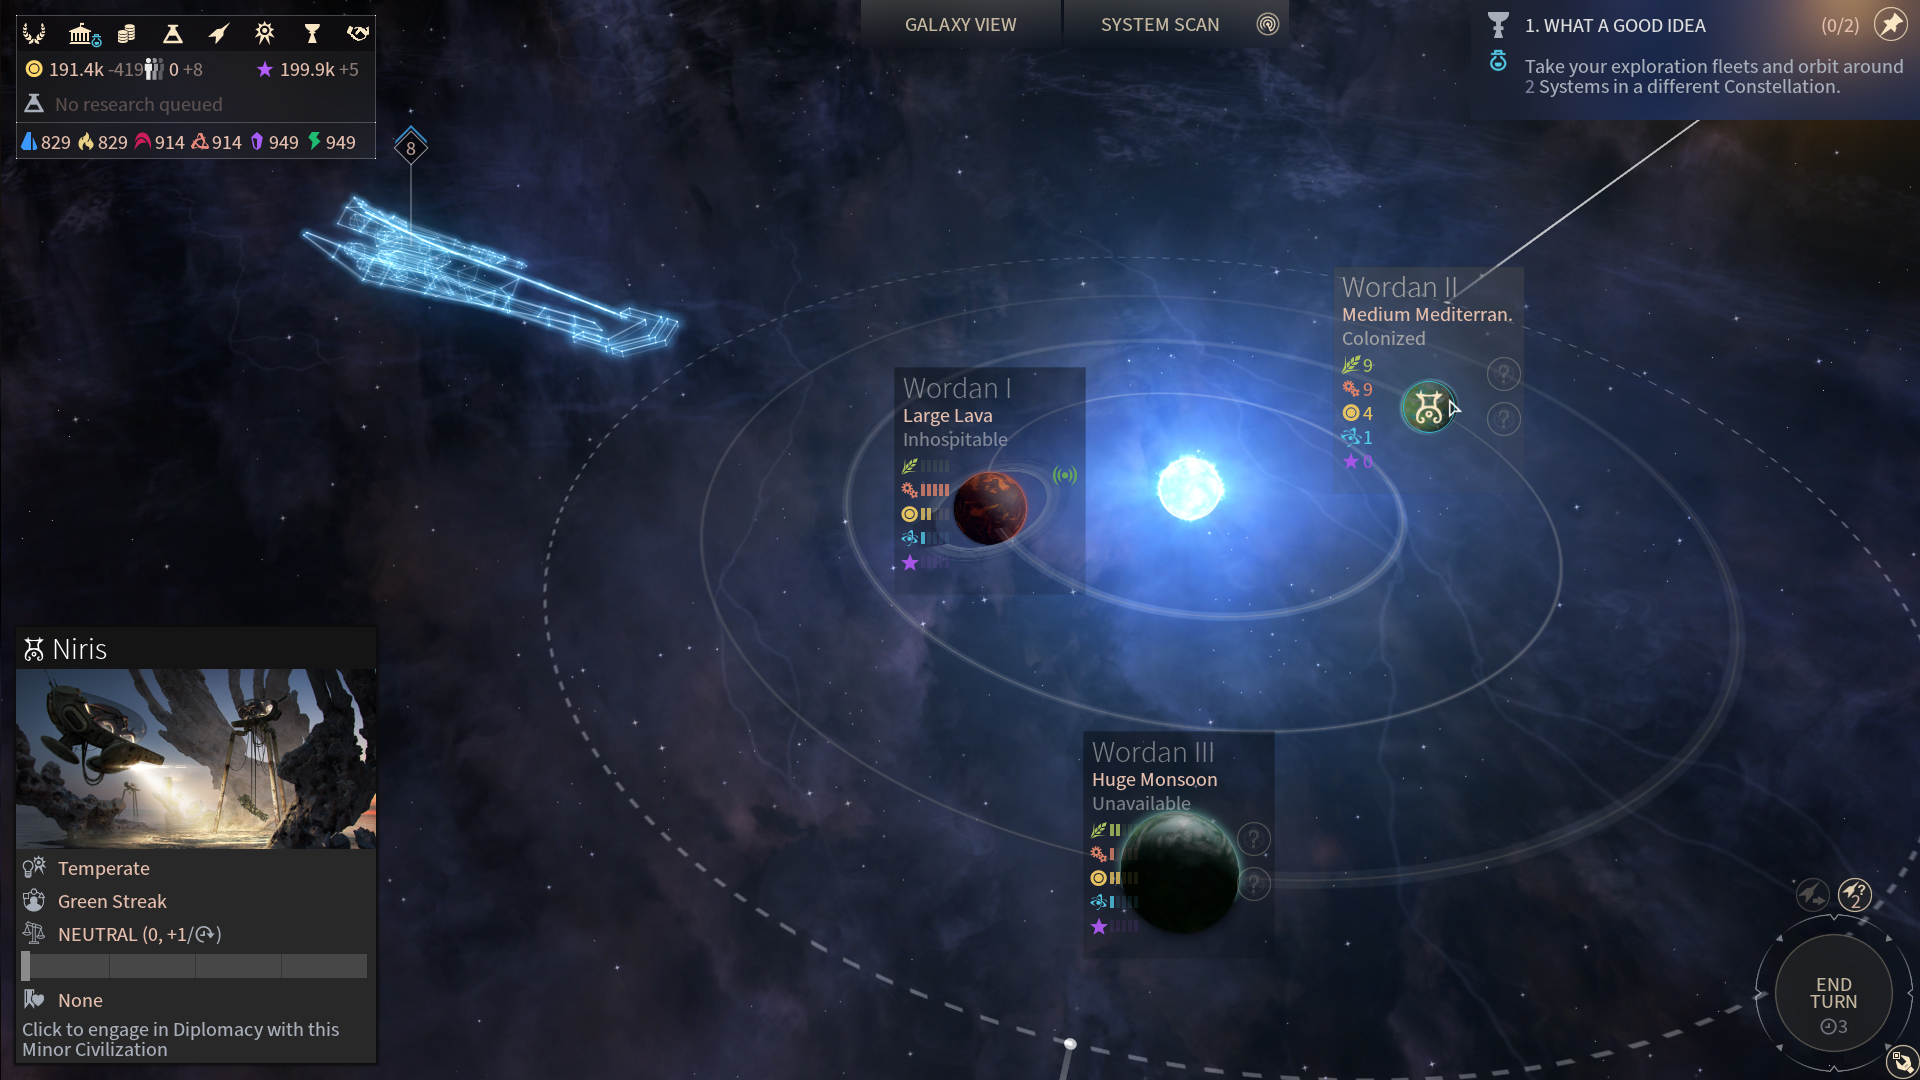 Endless Space 2 - System View.jpg